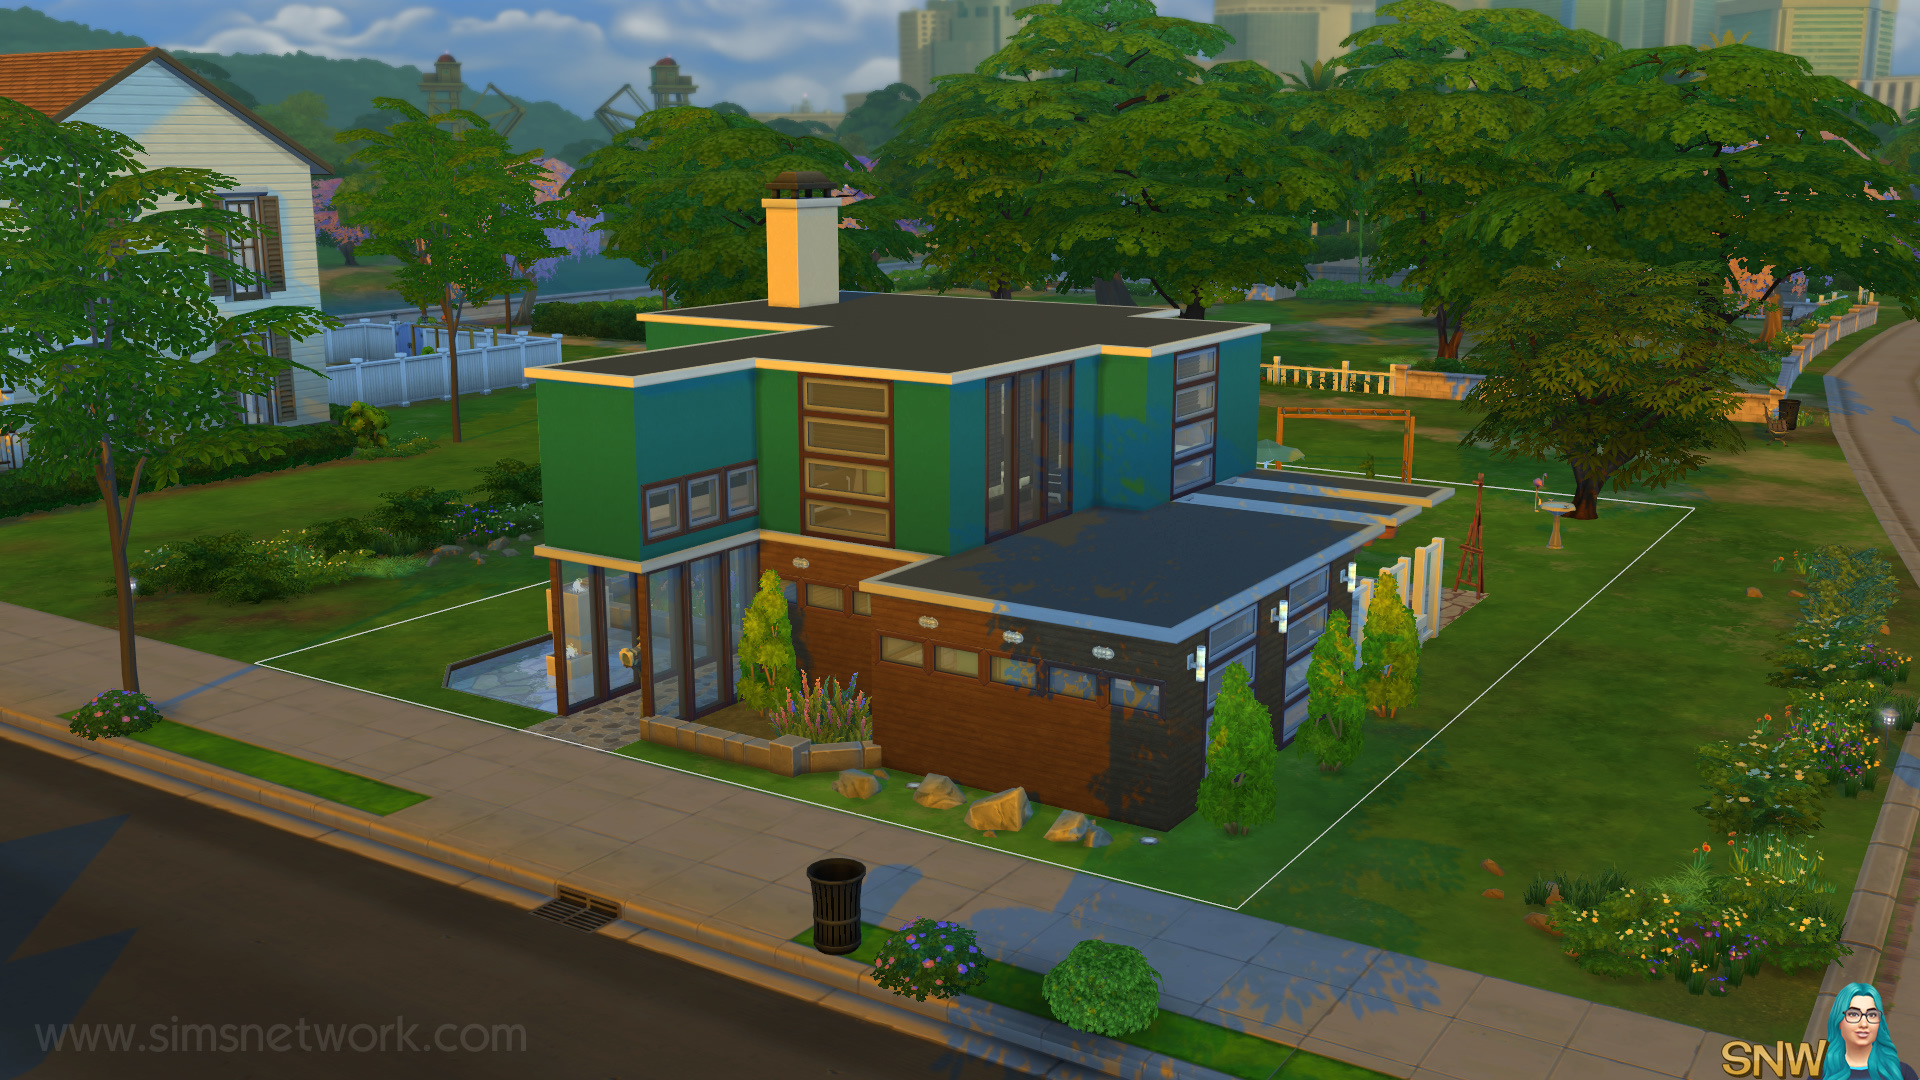 MidCentury Modern House in The Sims 4 SNW SimsNetworkcom